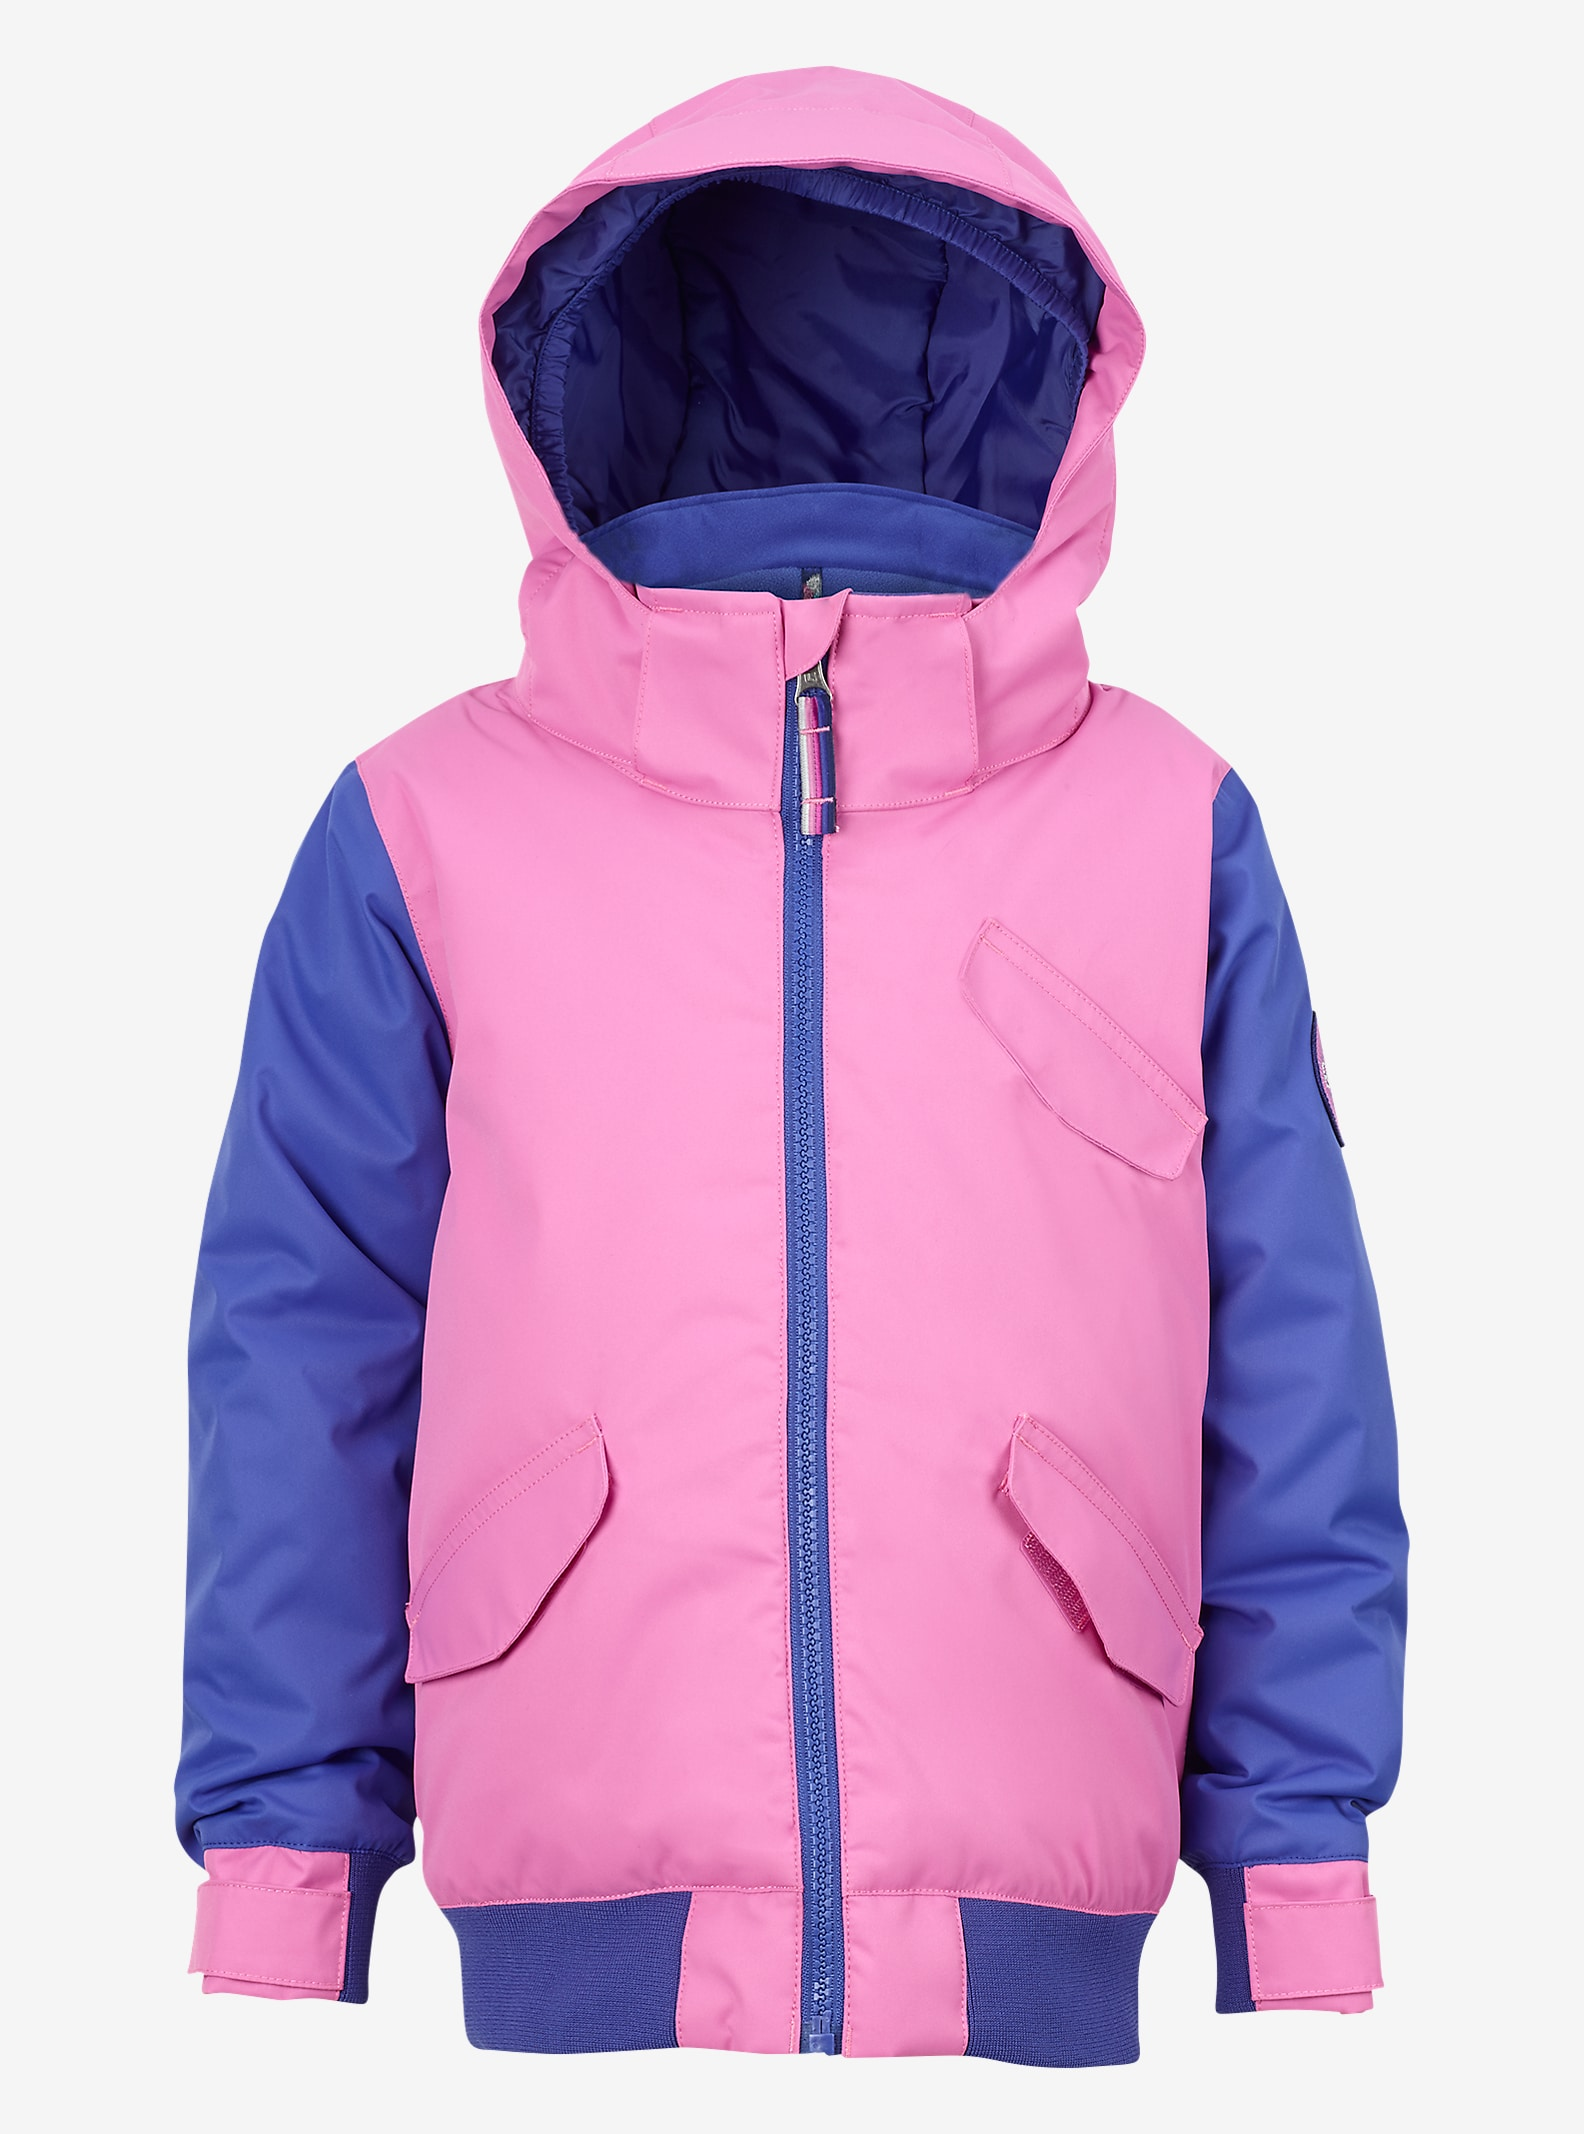 Burton - Manteau aviateur Minishred Twist fille affichage en Super Pink / Sorcerer